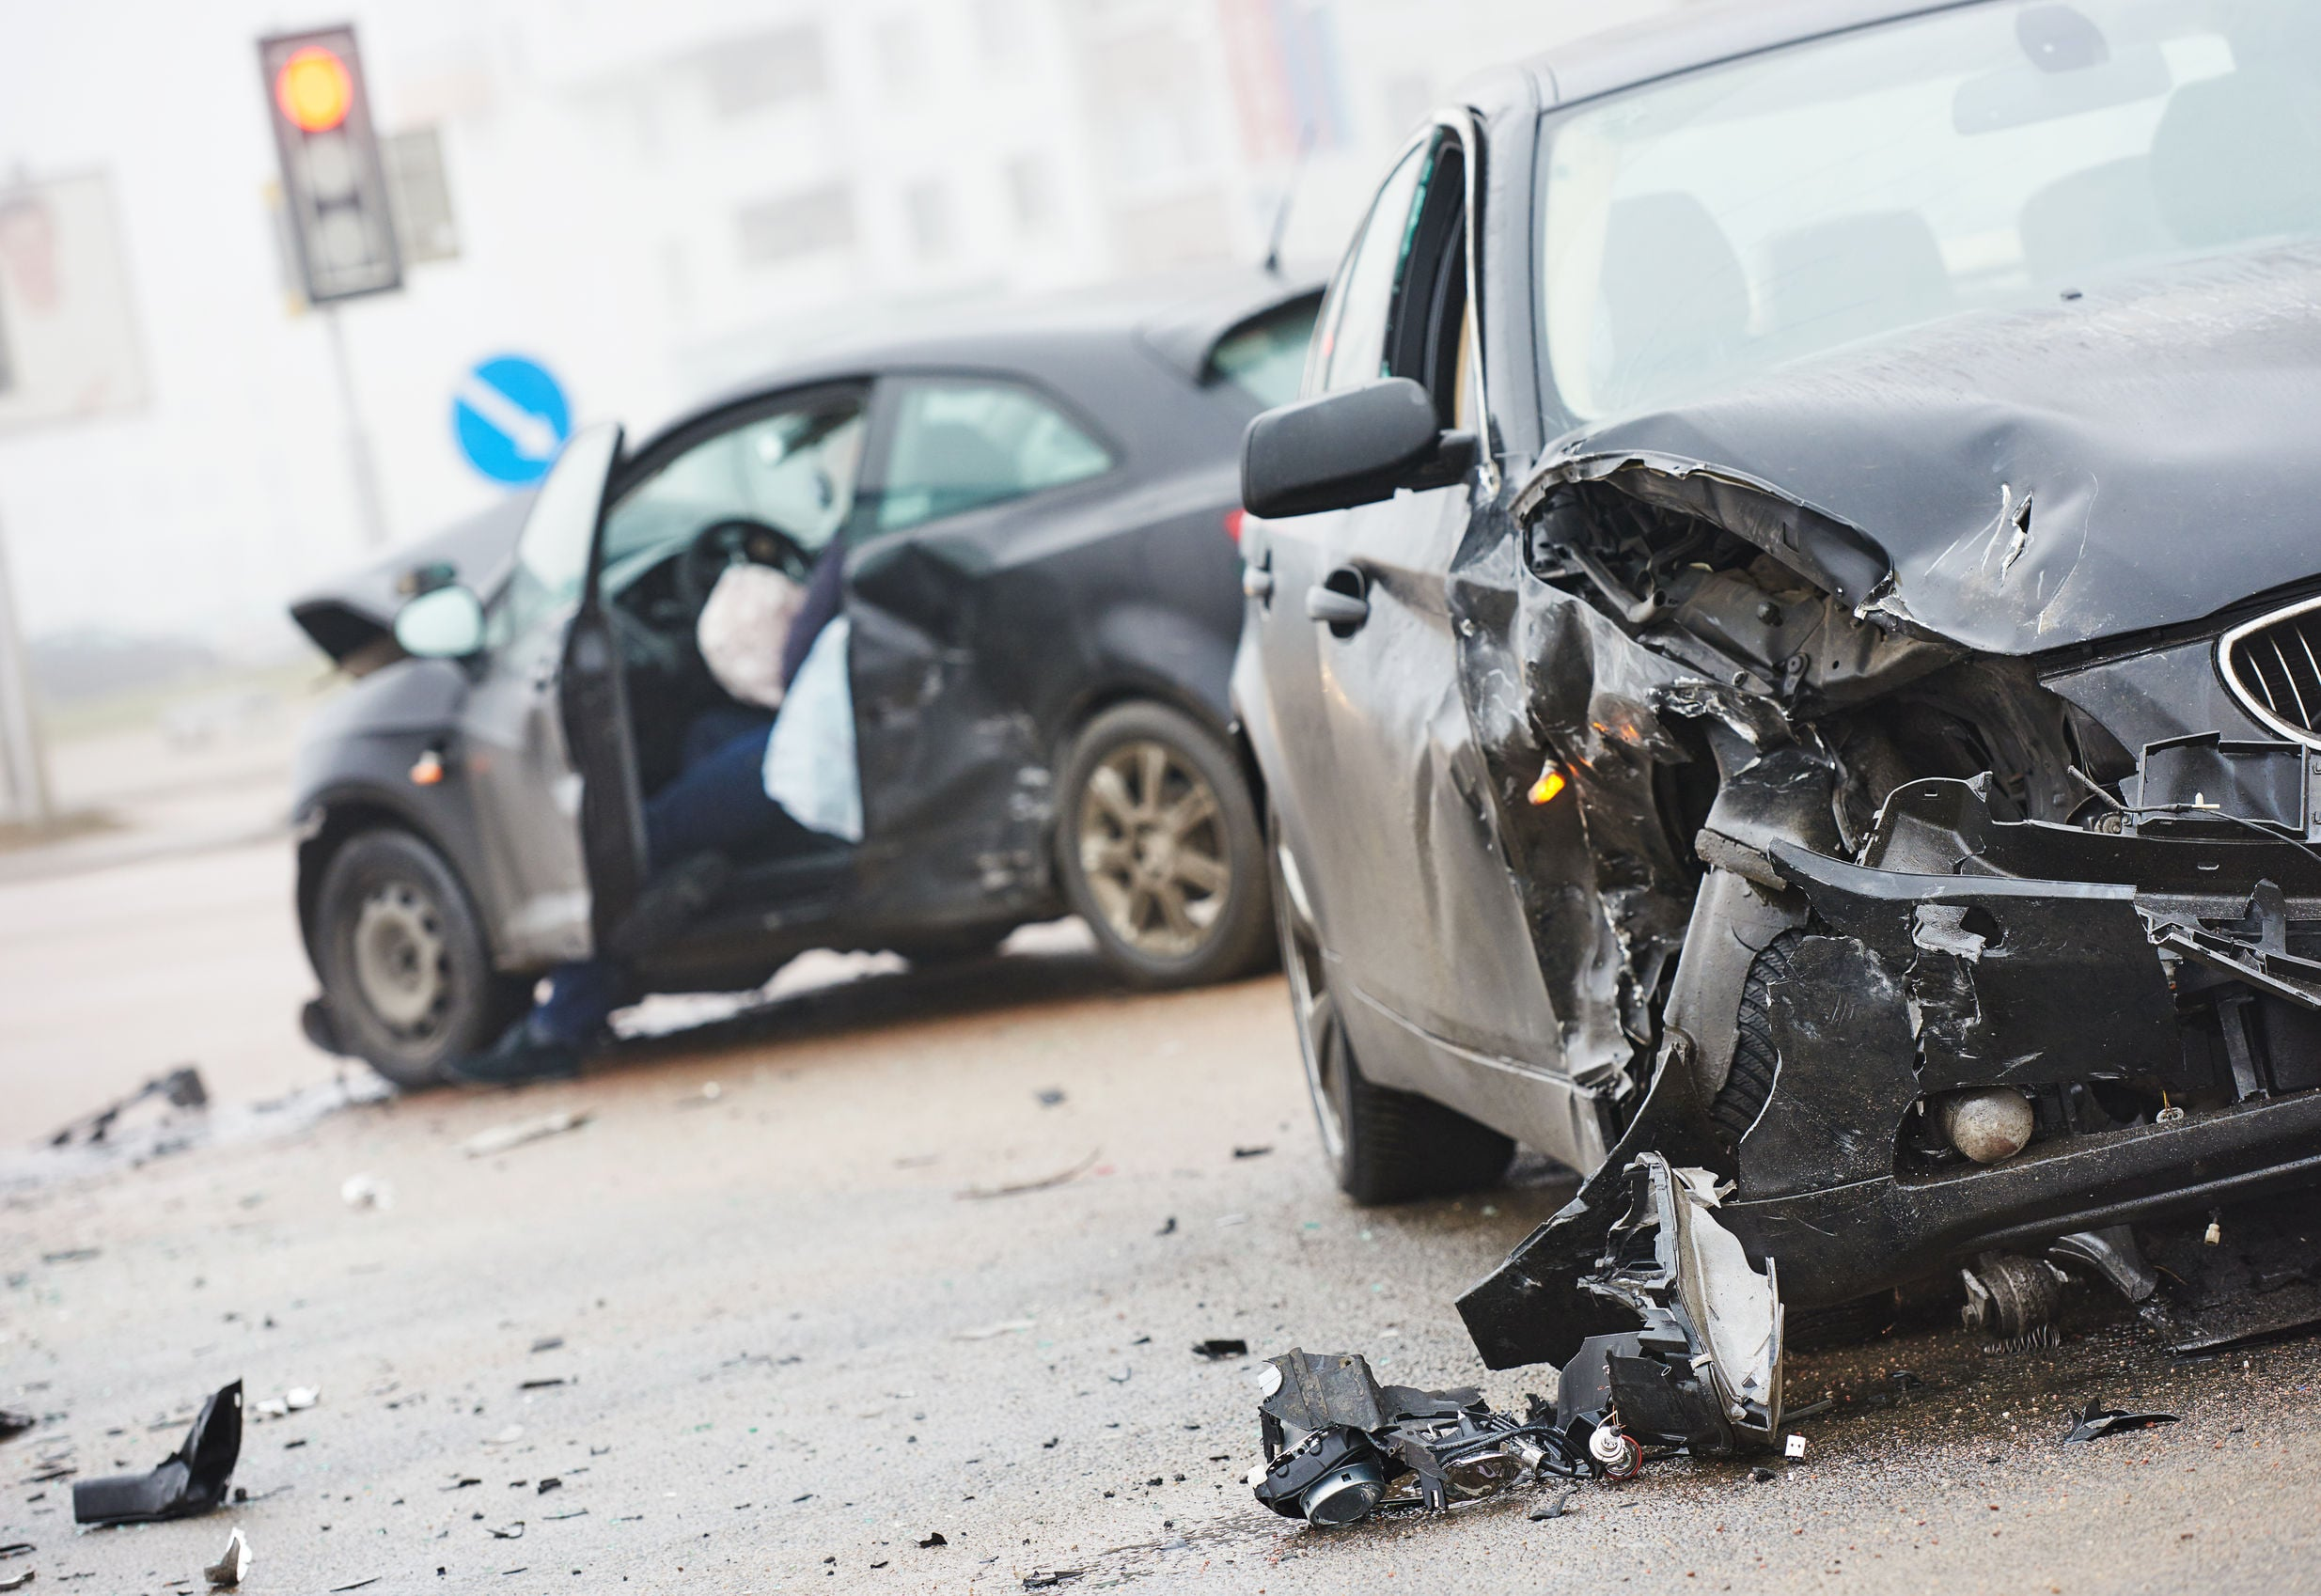 Auto Accident Lawsuits: Why They Sometimes Go to Trial in Florida